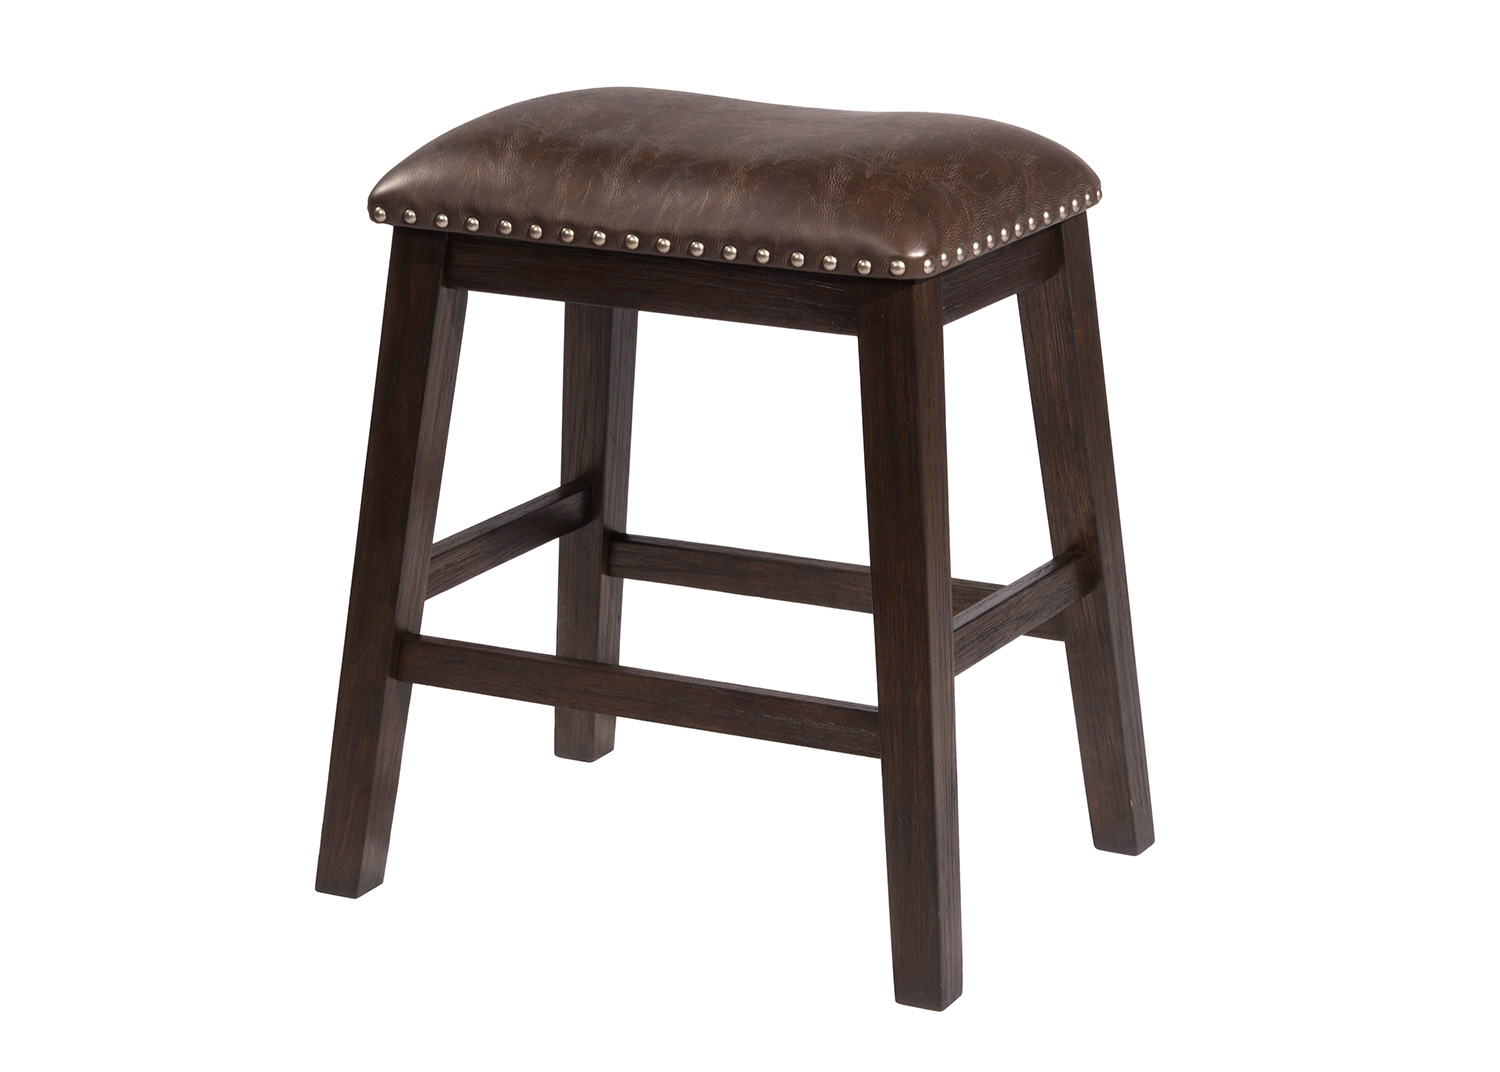 Hillsdale Spencer Non-Swivel Backless Counter Stool - Dark Espresso